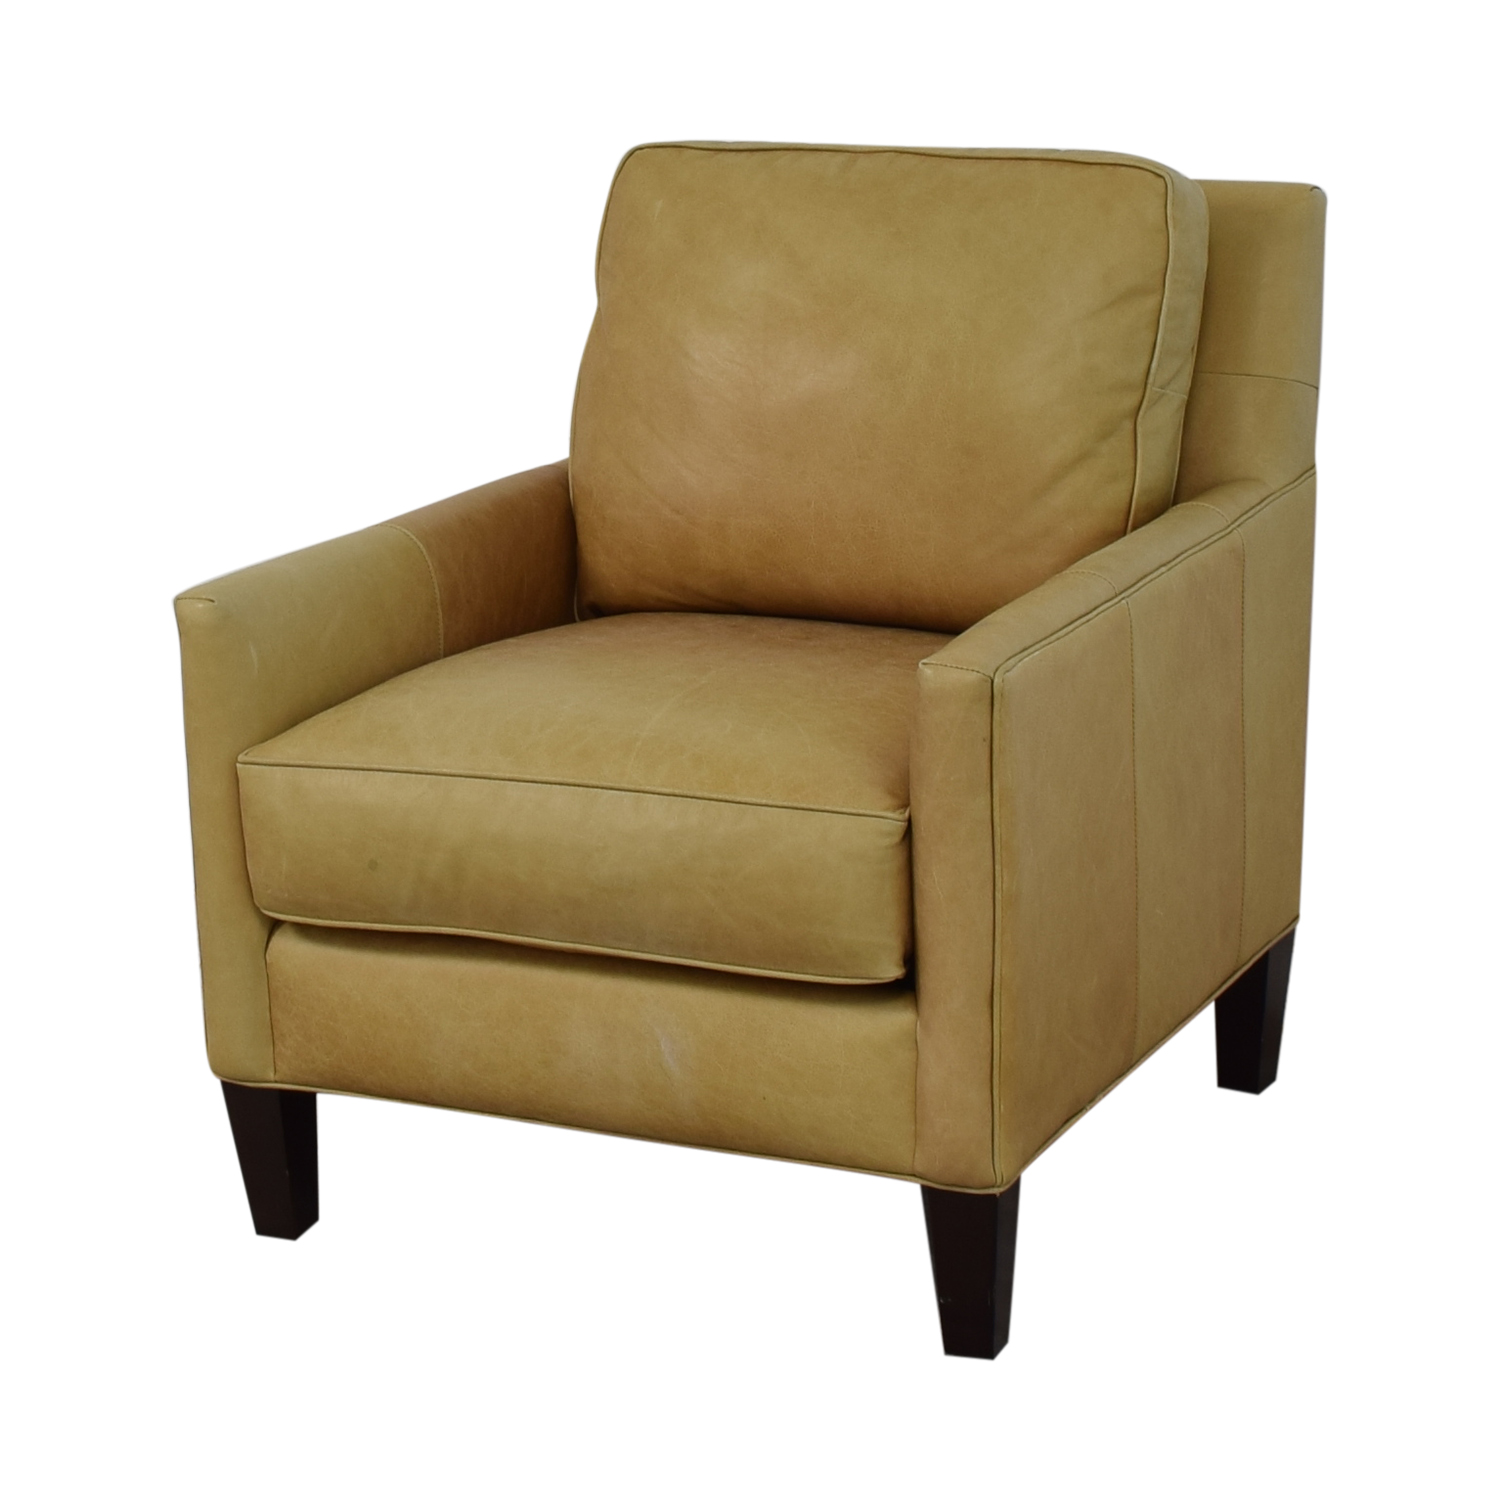 Astonishing 86 Off Thomasville Thomasville Leather Armchair Chairs Short Links Chair Design For Home Short Linksinfo